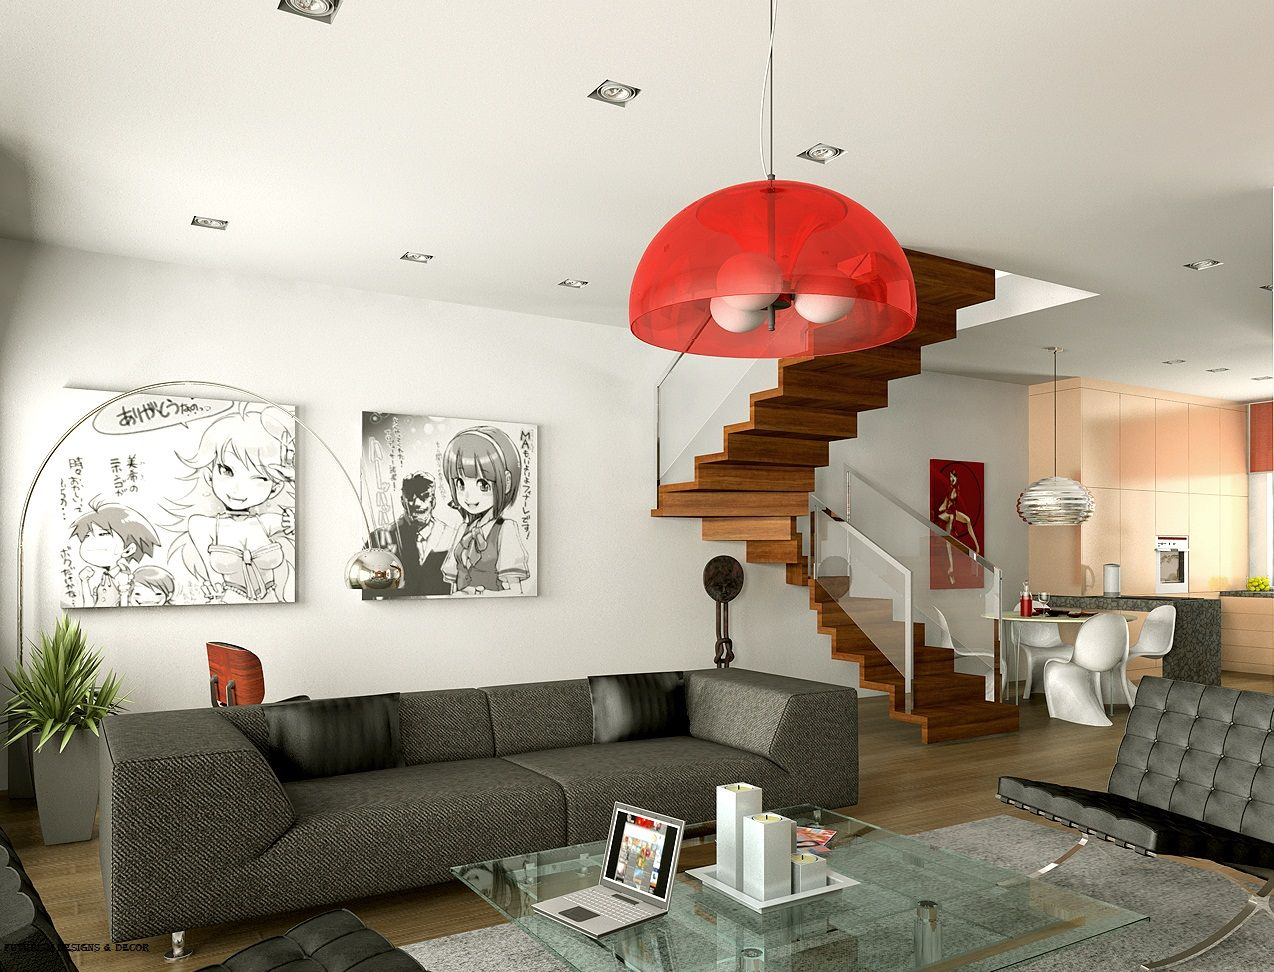 Futuristic Living Room In The Maisonette Apartment With Red Chandelier And Ultramodern Chair Forms